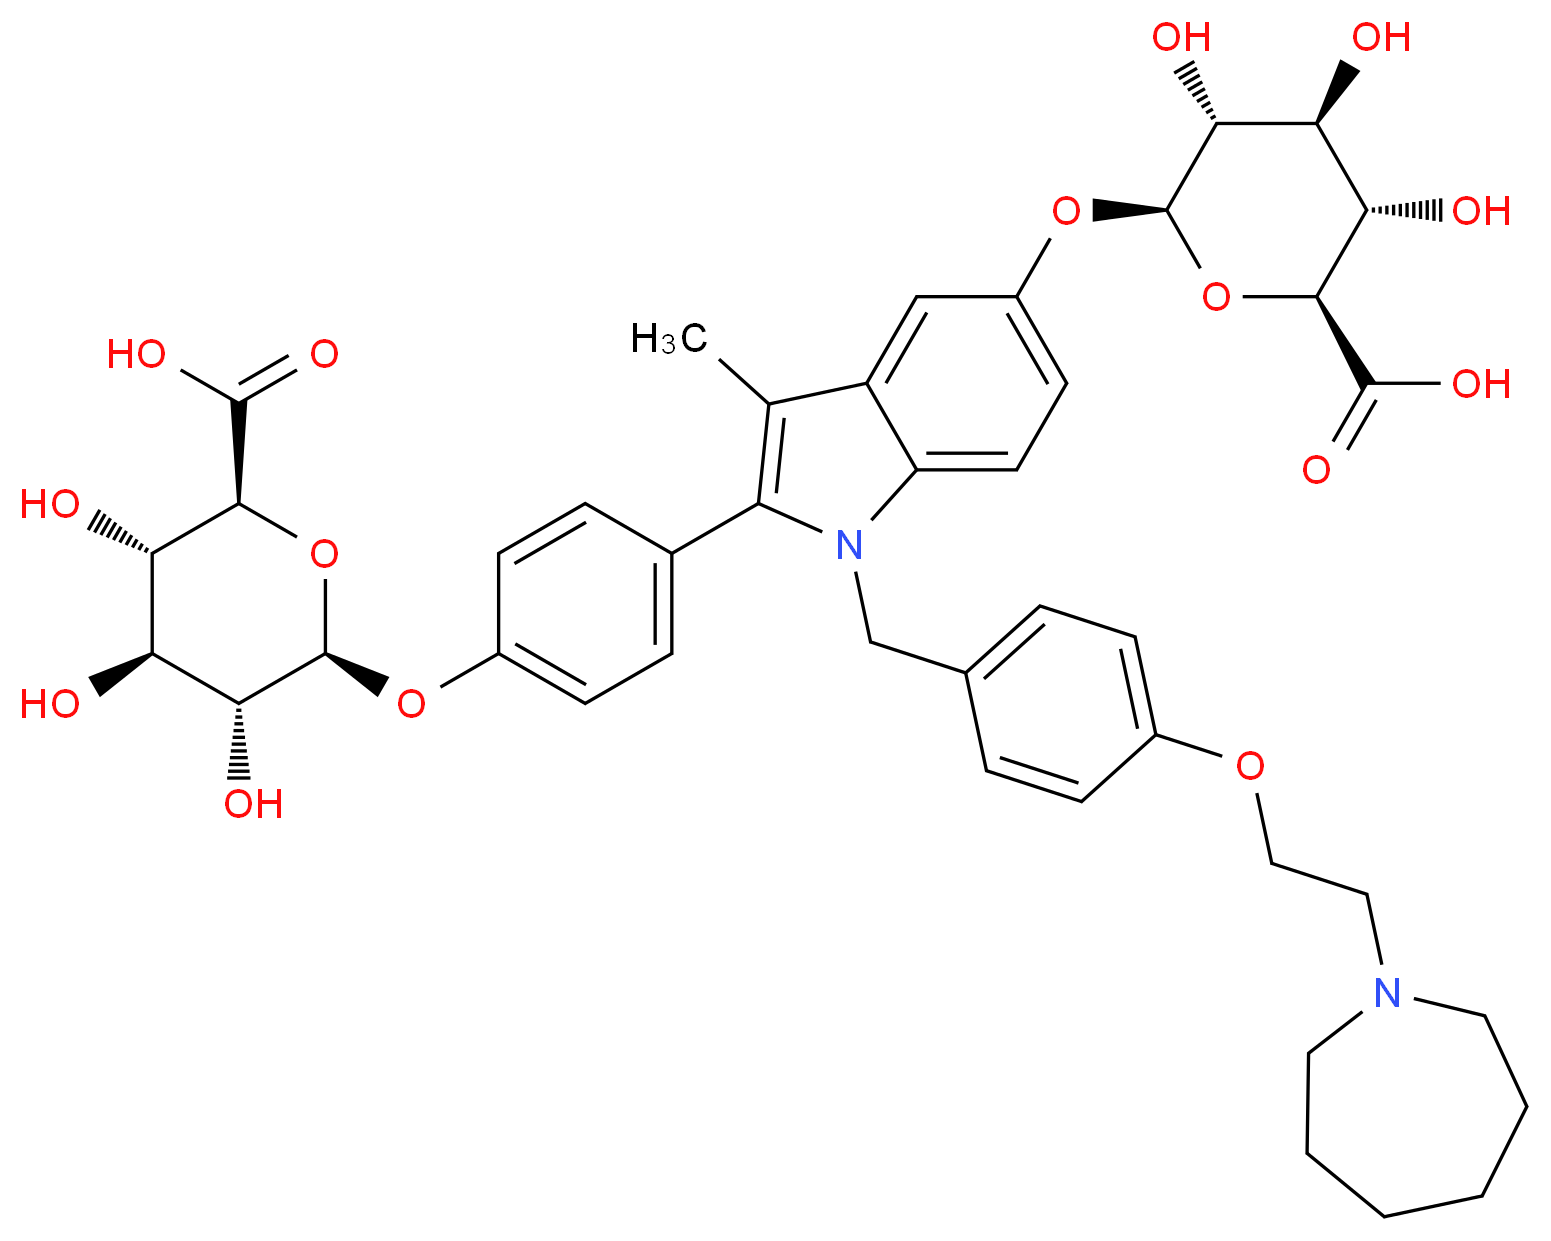 (2S,3S,4S,5R,6S)-6-{4-[1-({4-[2-(azepan-1-yl)ethoxy]phenyl}methyl)-5-{[(2S,3R,4S,5S,6S)-6-carboxy-3,4,5-trihydroxyoxan-2-yl]oxy}-3-methyl-1H-indol-2-yl]phenoxy}-3,4,5-trihydroxyoxane-2-carboxylic acid_分子结构_CAS_328933-67-1